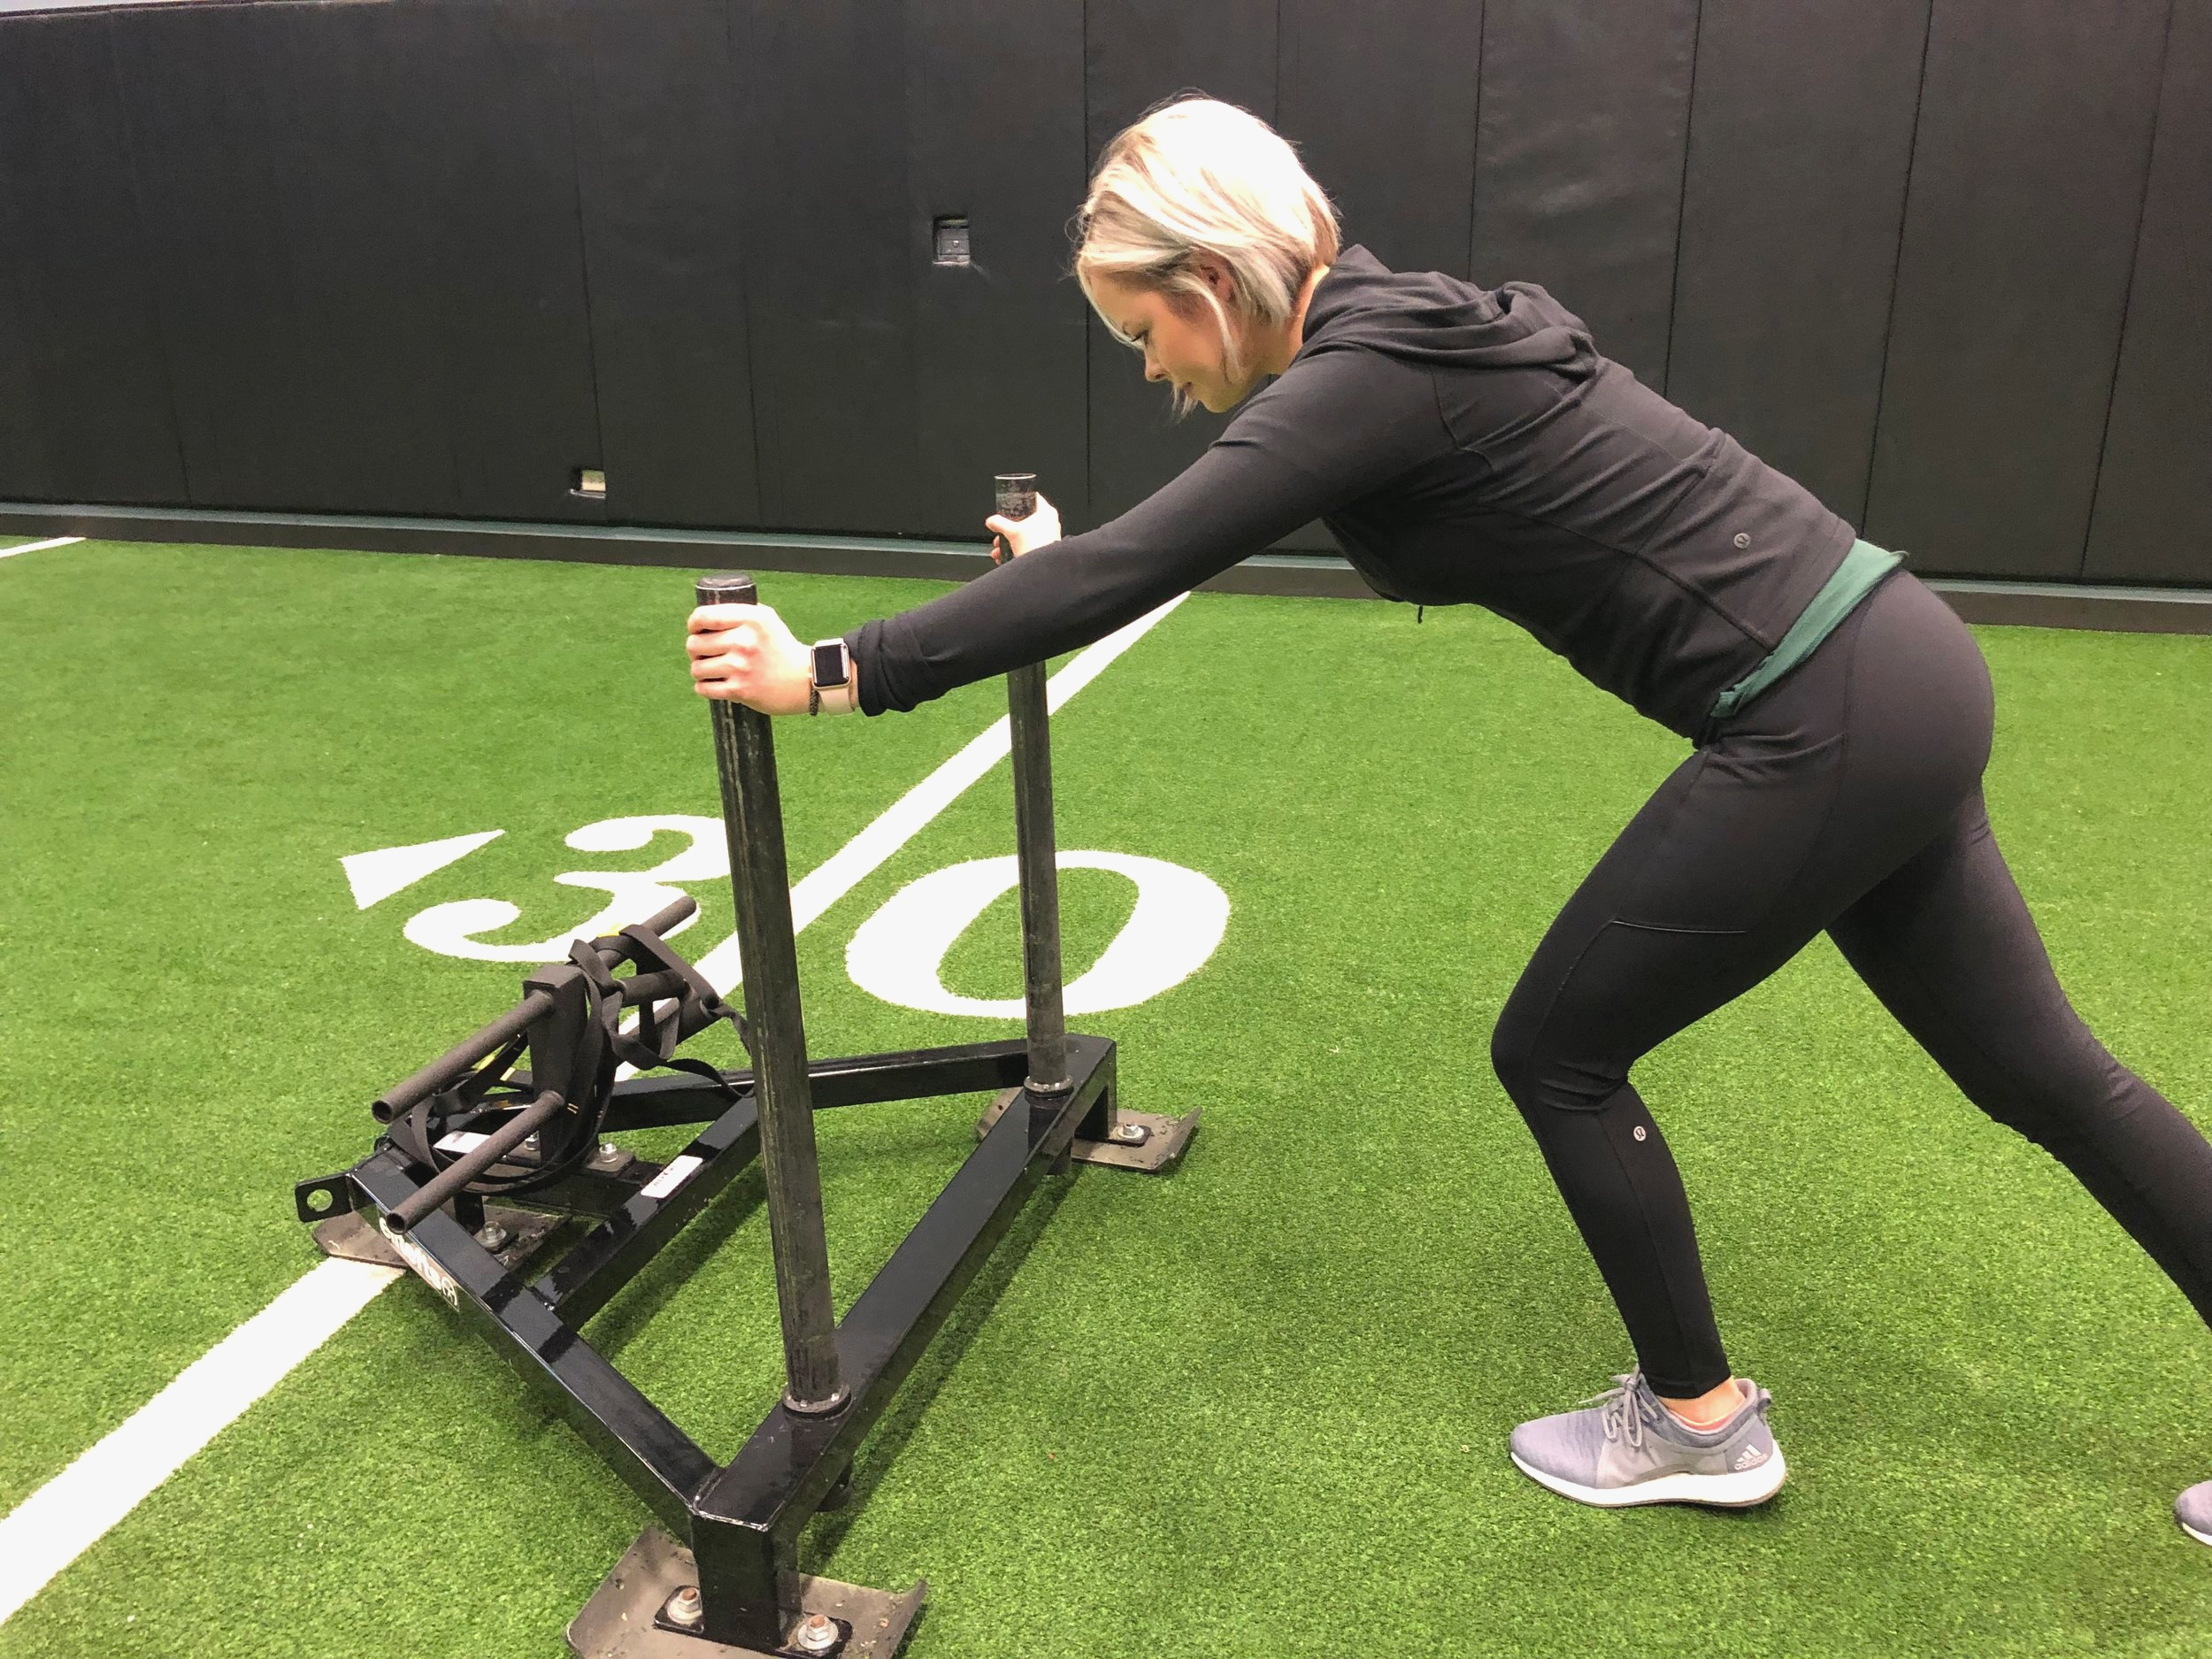 The Prowler Sled - One of The Best Sports Performances Tools Out There!